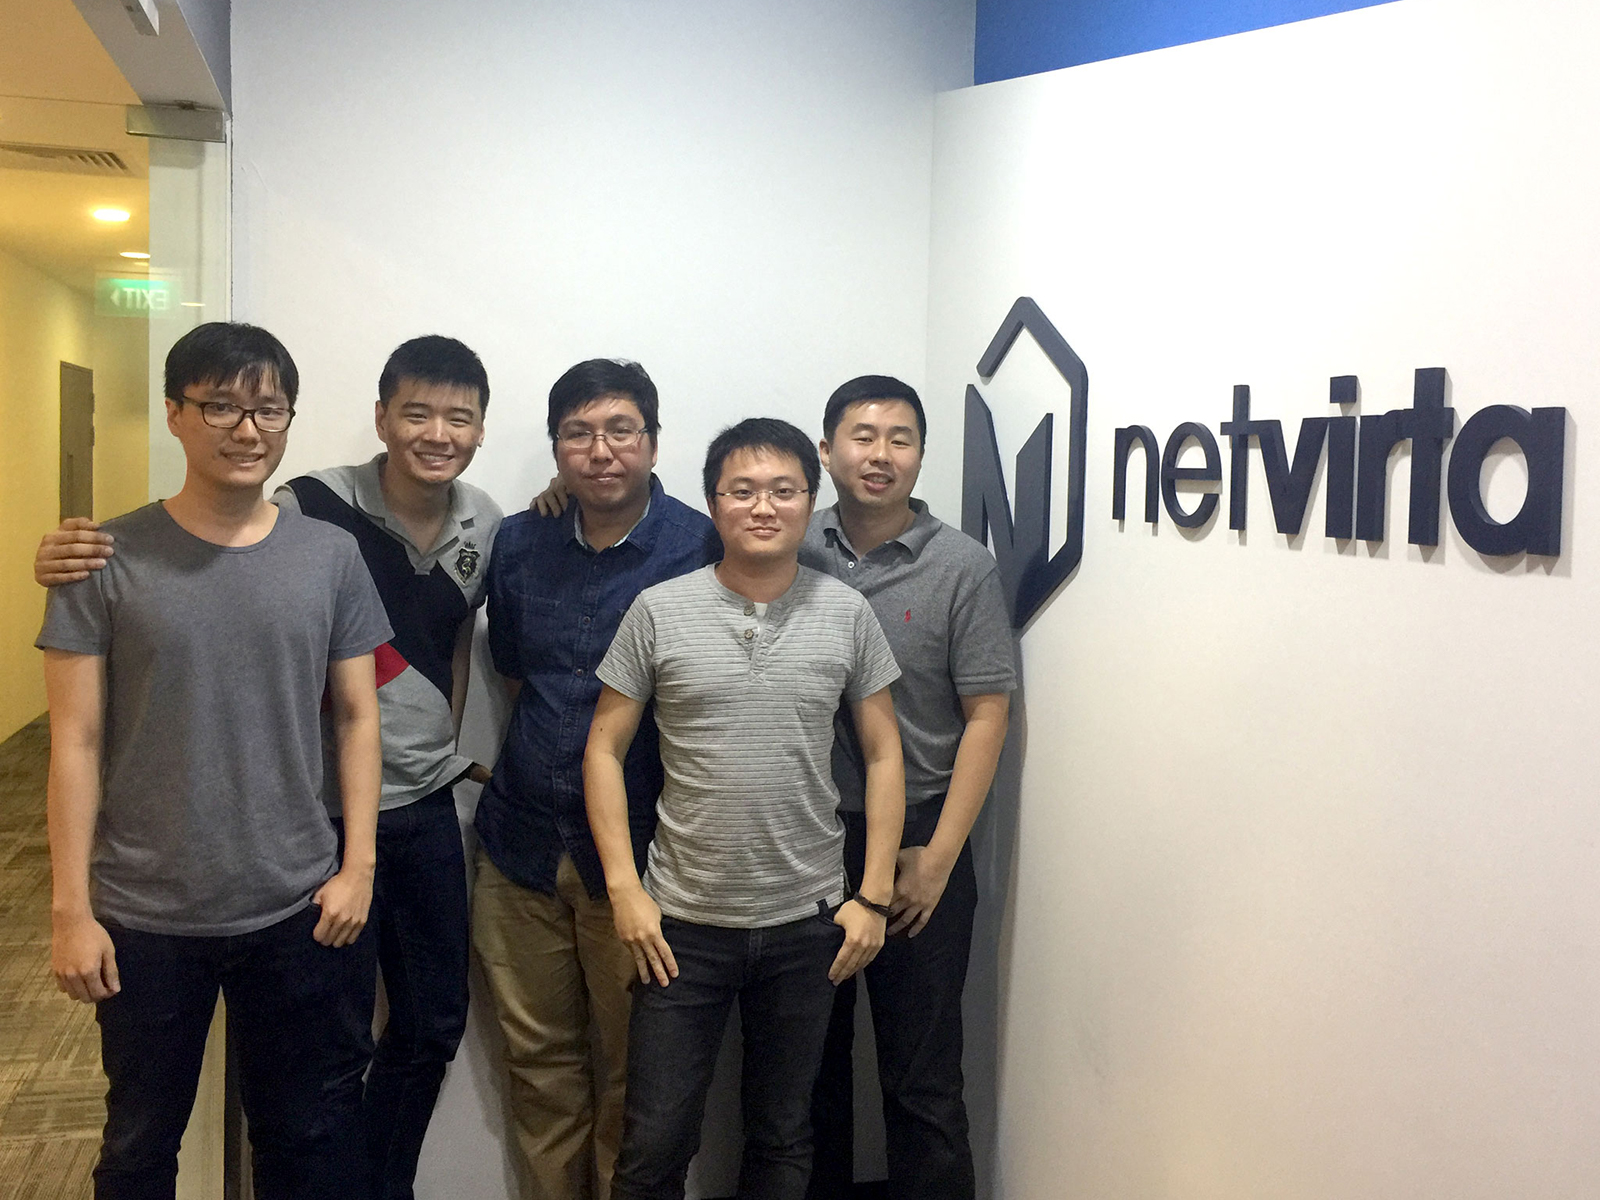 A group of DigiPen Singapore alumni pose next to the logo of Boston-based startup company NetVirta